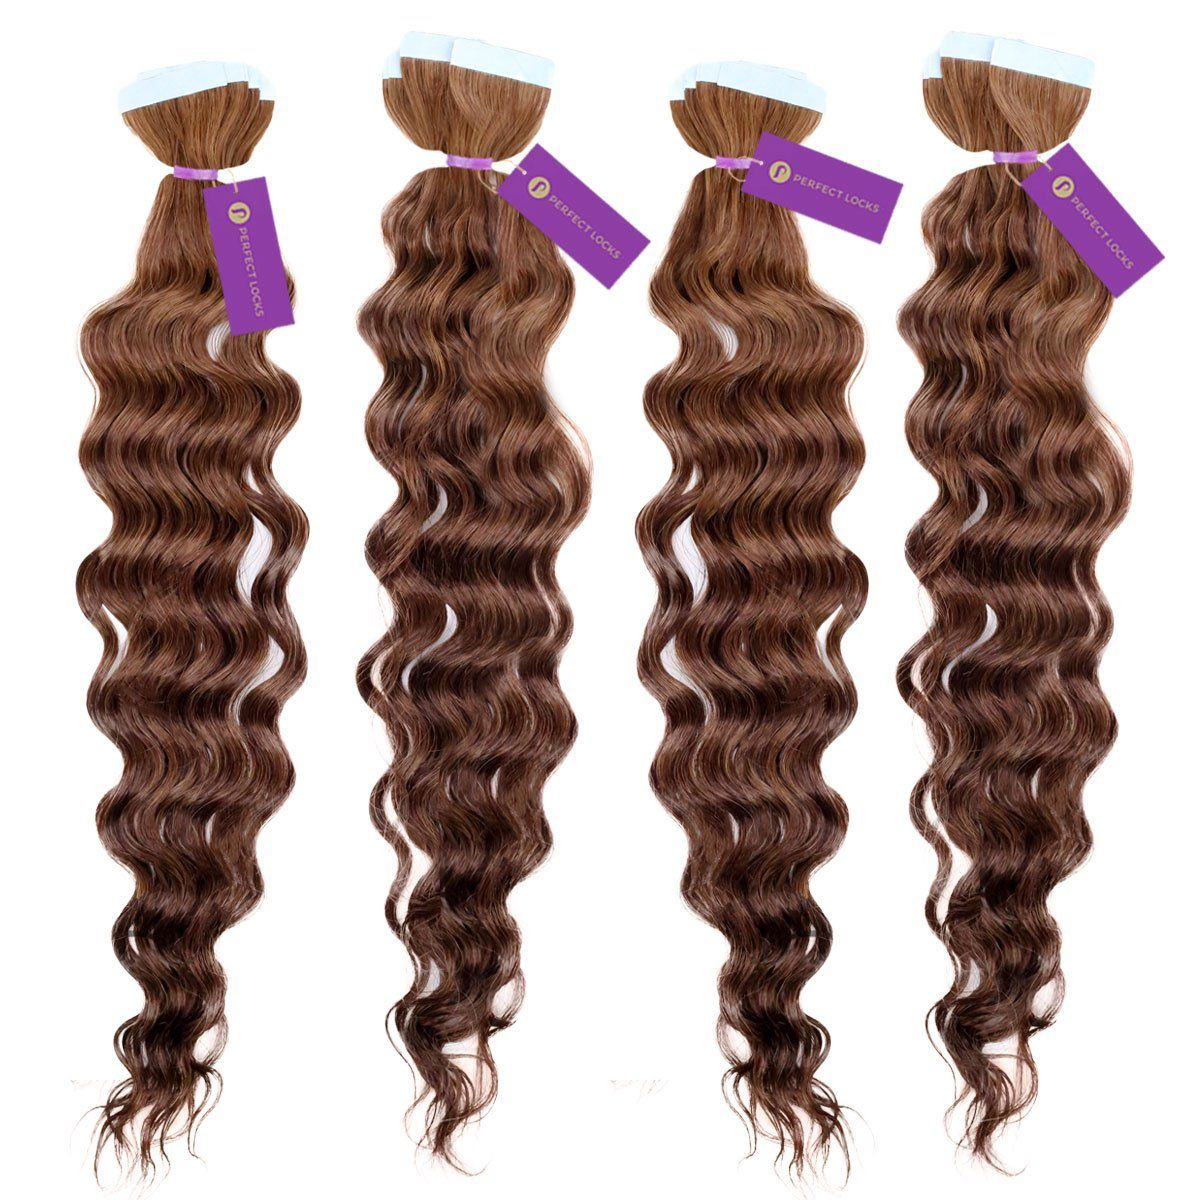 Curly tapein hair extension bundle deal hair extensions curly